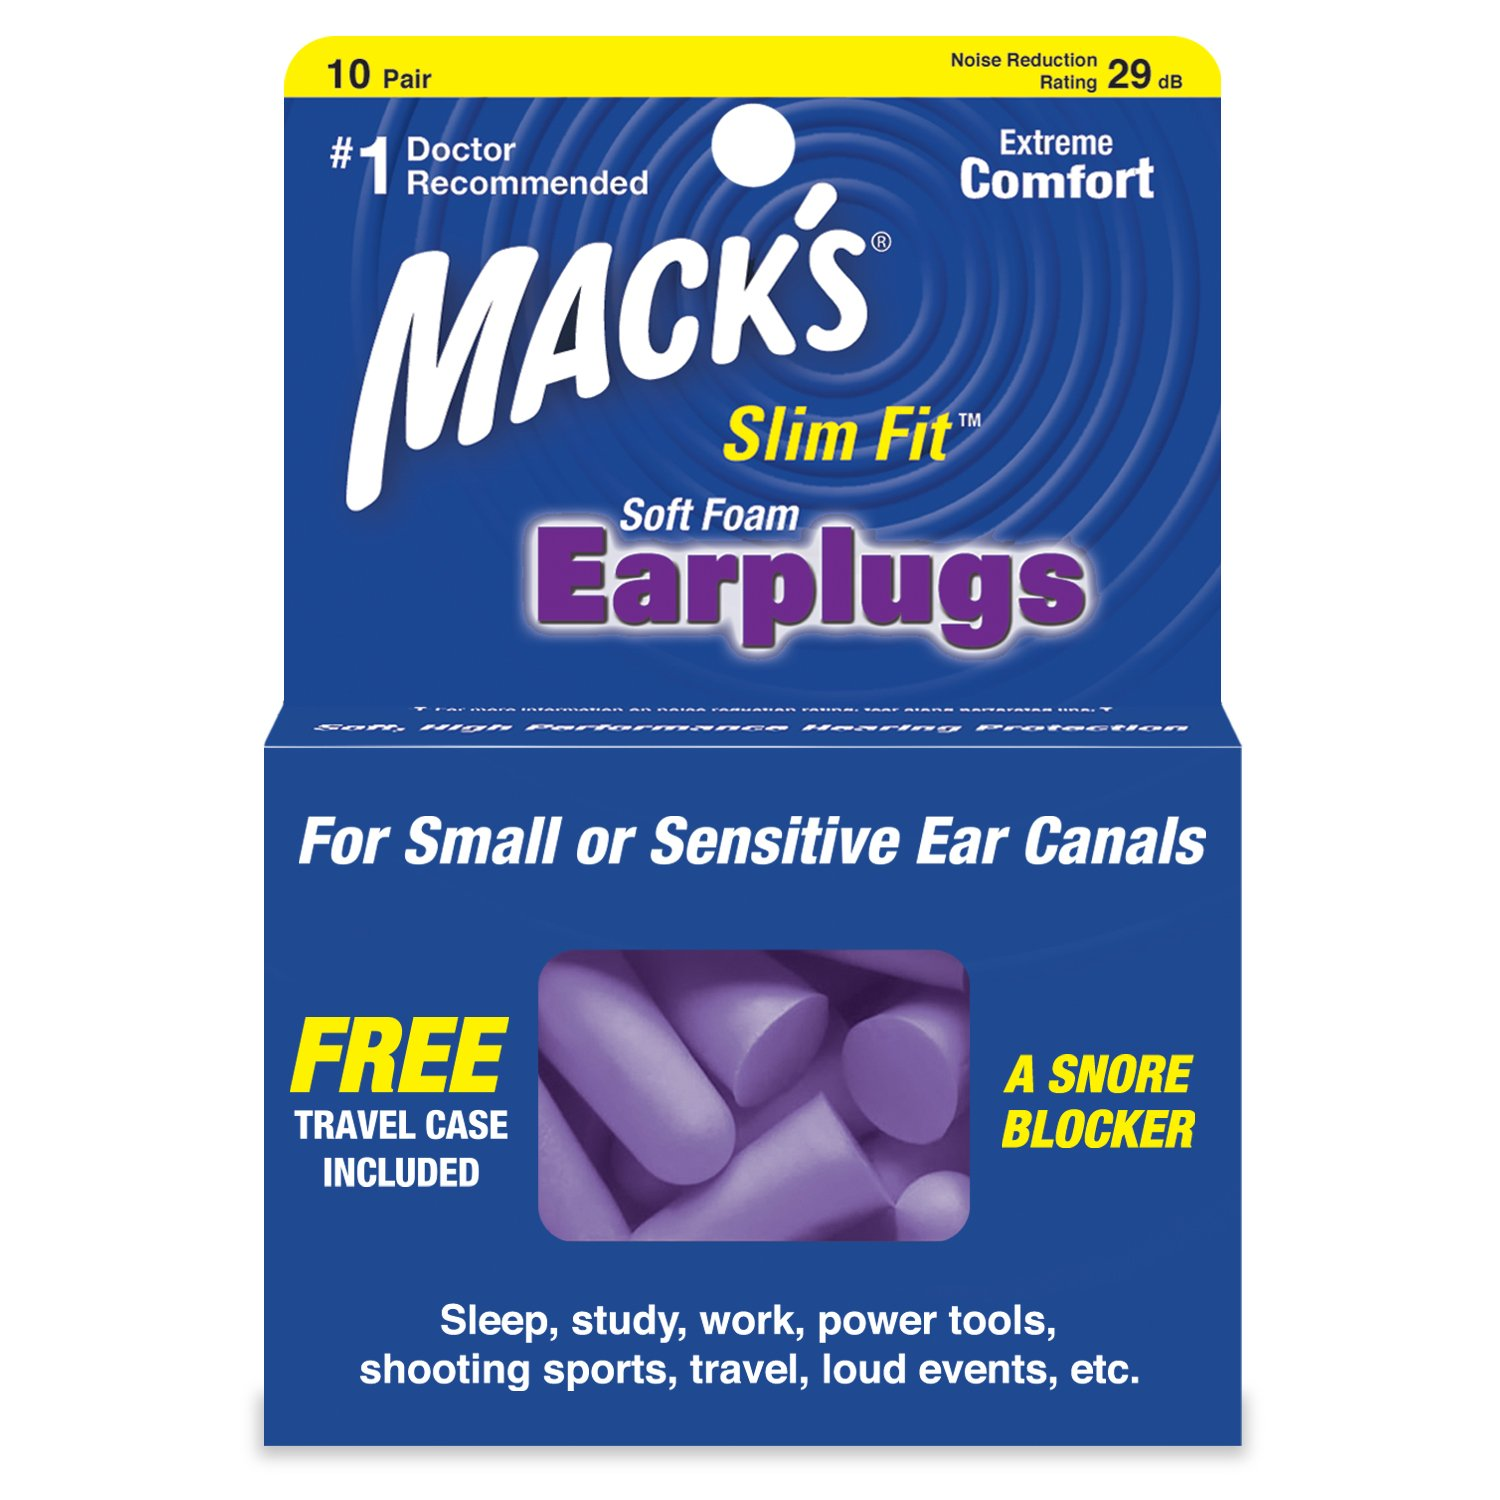 Mack's Slim Fit Soft Foam Earplugs, 10 Pair - Small Ear Plugs for Sleeping, Snoring, Traveling, Concerts, Shooting Sports and Power Tools